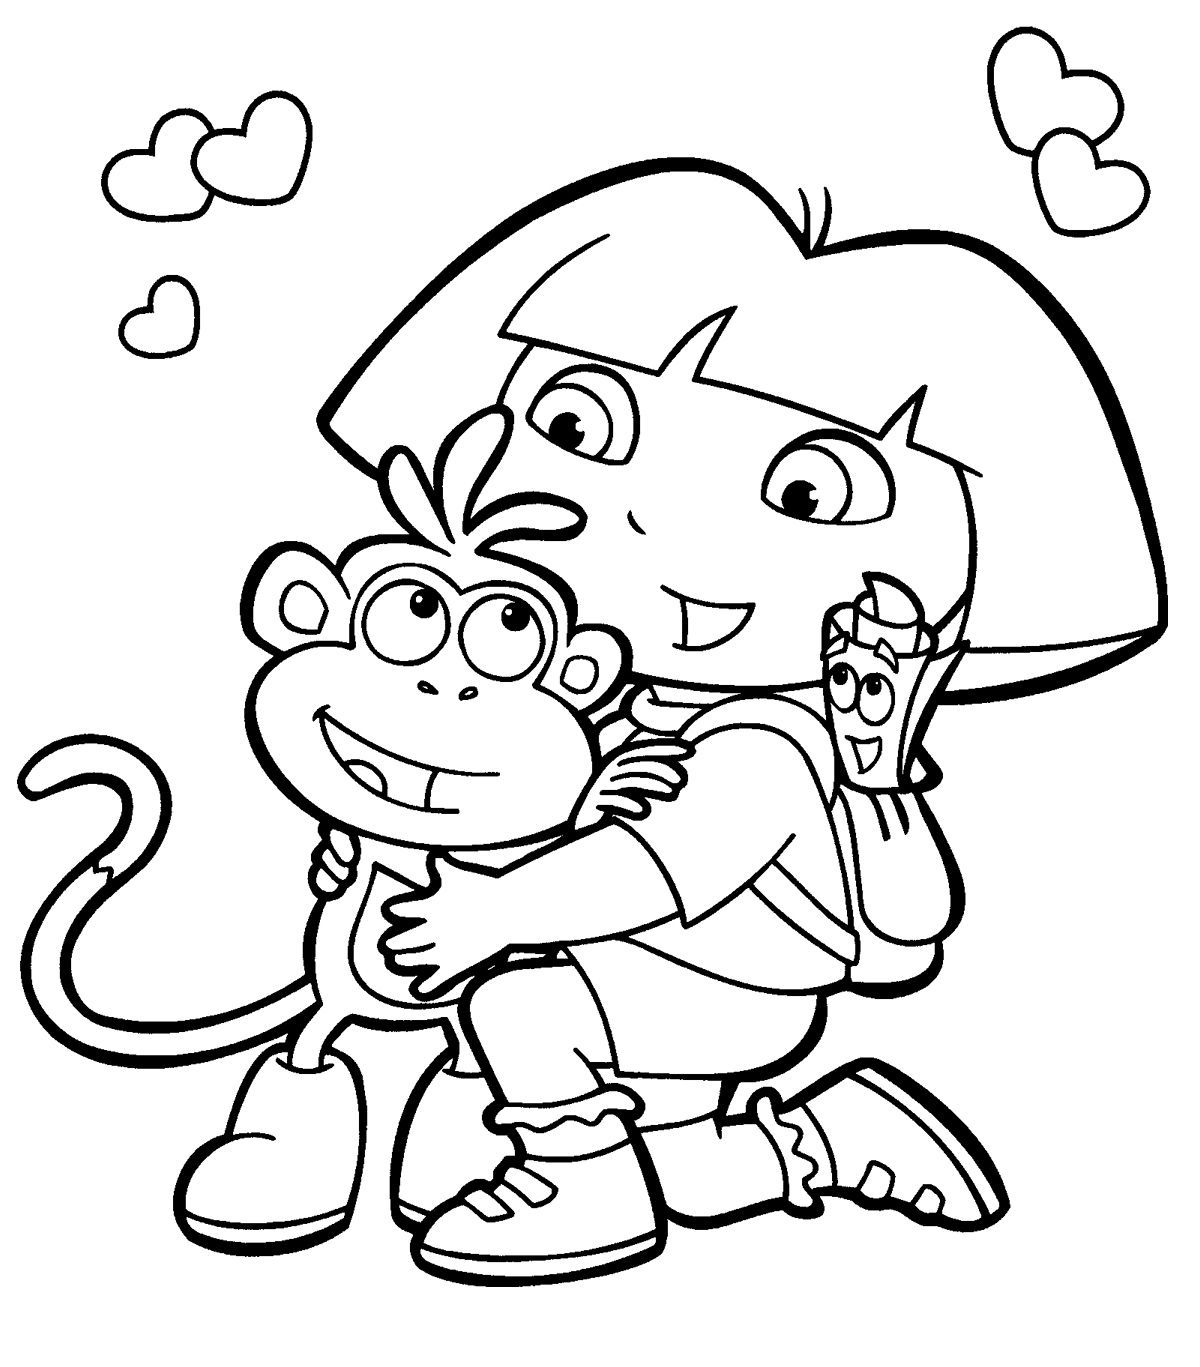 Dora Explorer Coloring Sheets Dora Explorer Coloring Sheets Dora The Explorer Coloring Sh Kids Printable Coloring Pages Birthday Coloring Pages Dora Coloring